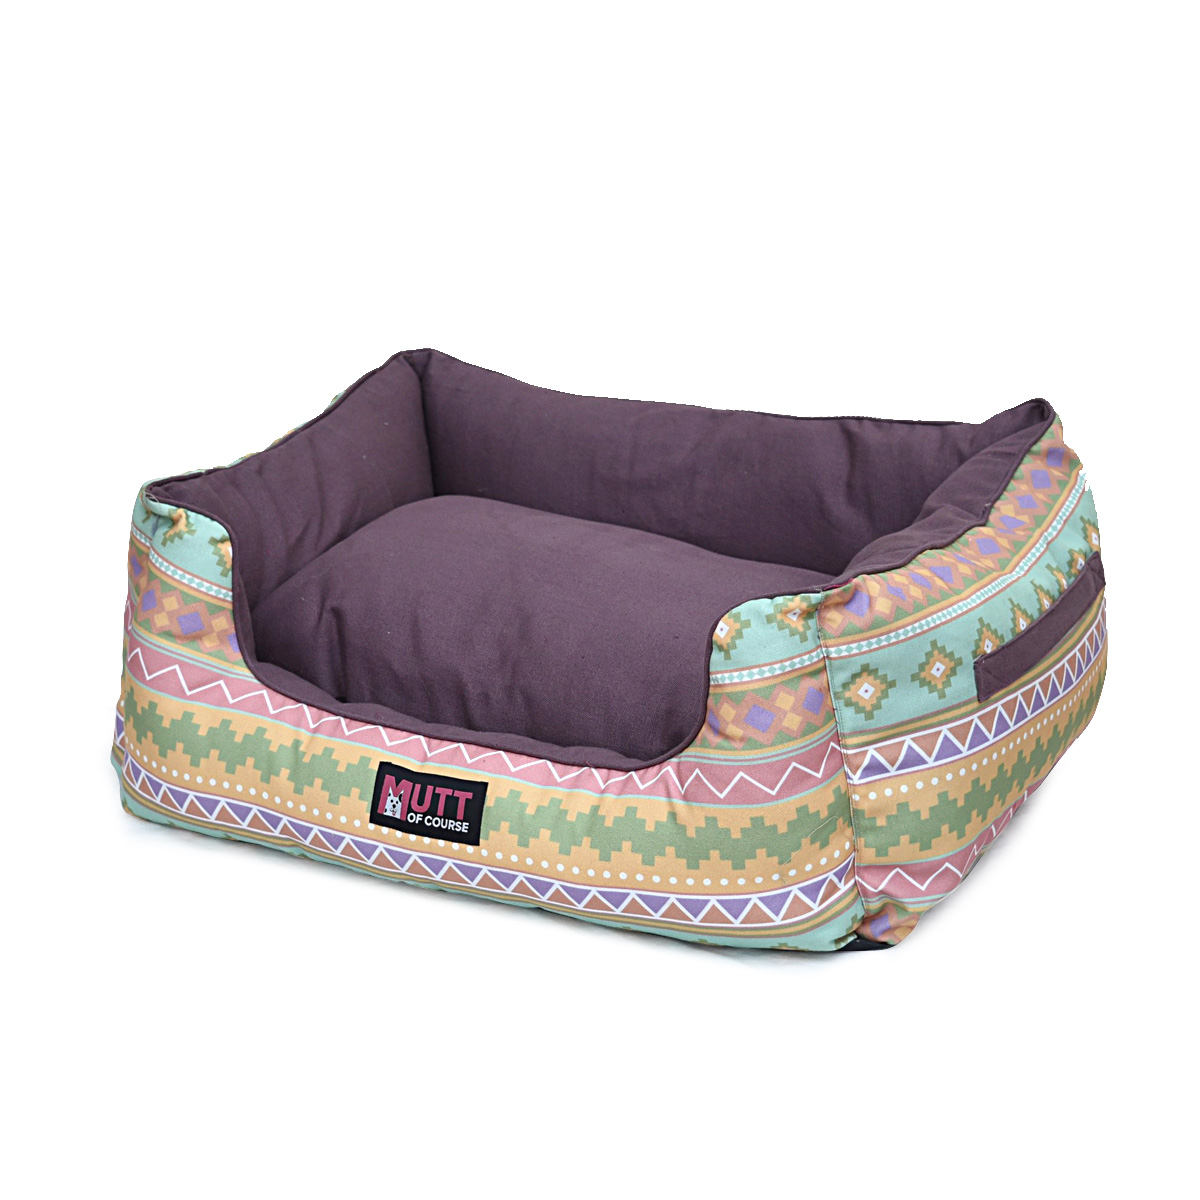 Mutt Of Course Lounger Bed For Dogs - Aztec Printe  - Xlarge